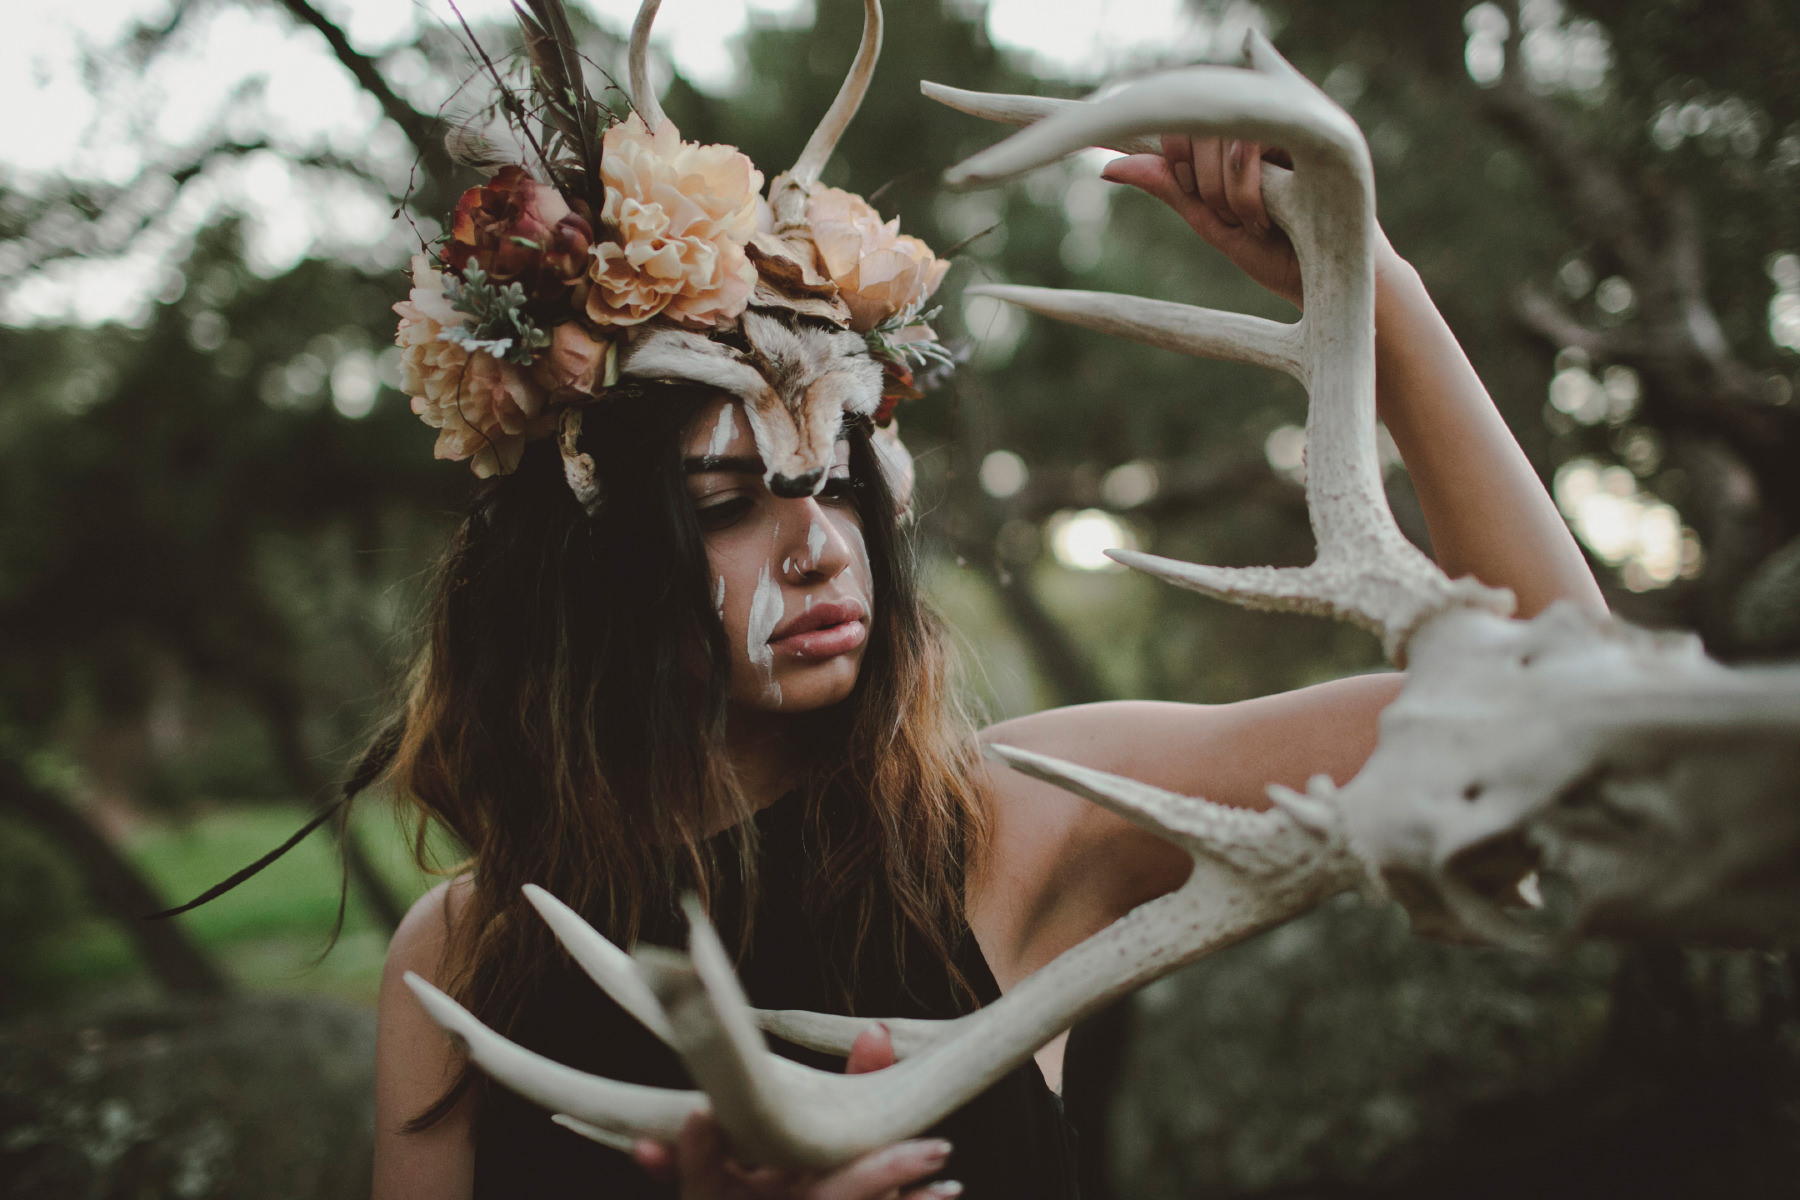 Model Alexandra Sweiss wearing a coyote and antler headdress while holding a deer skull for a Being As An Ocean music video